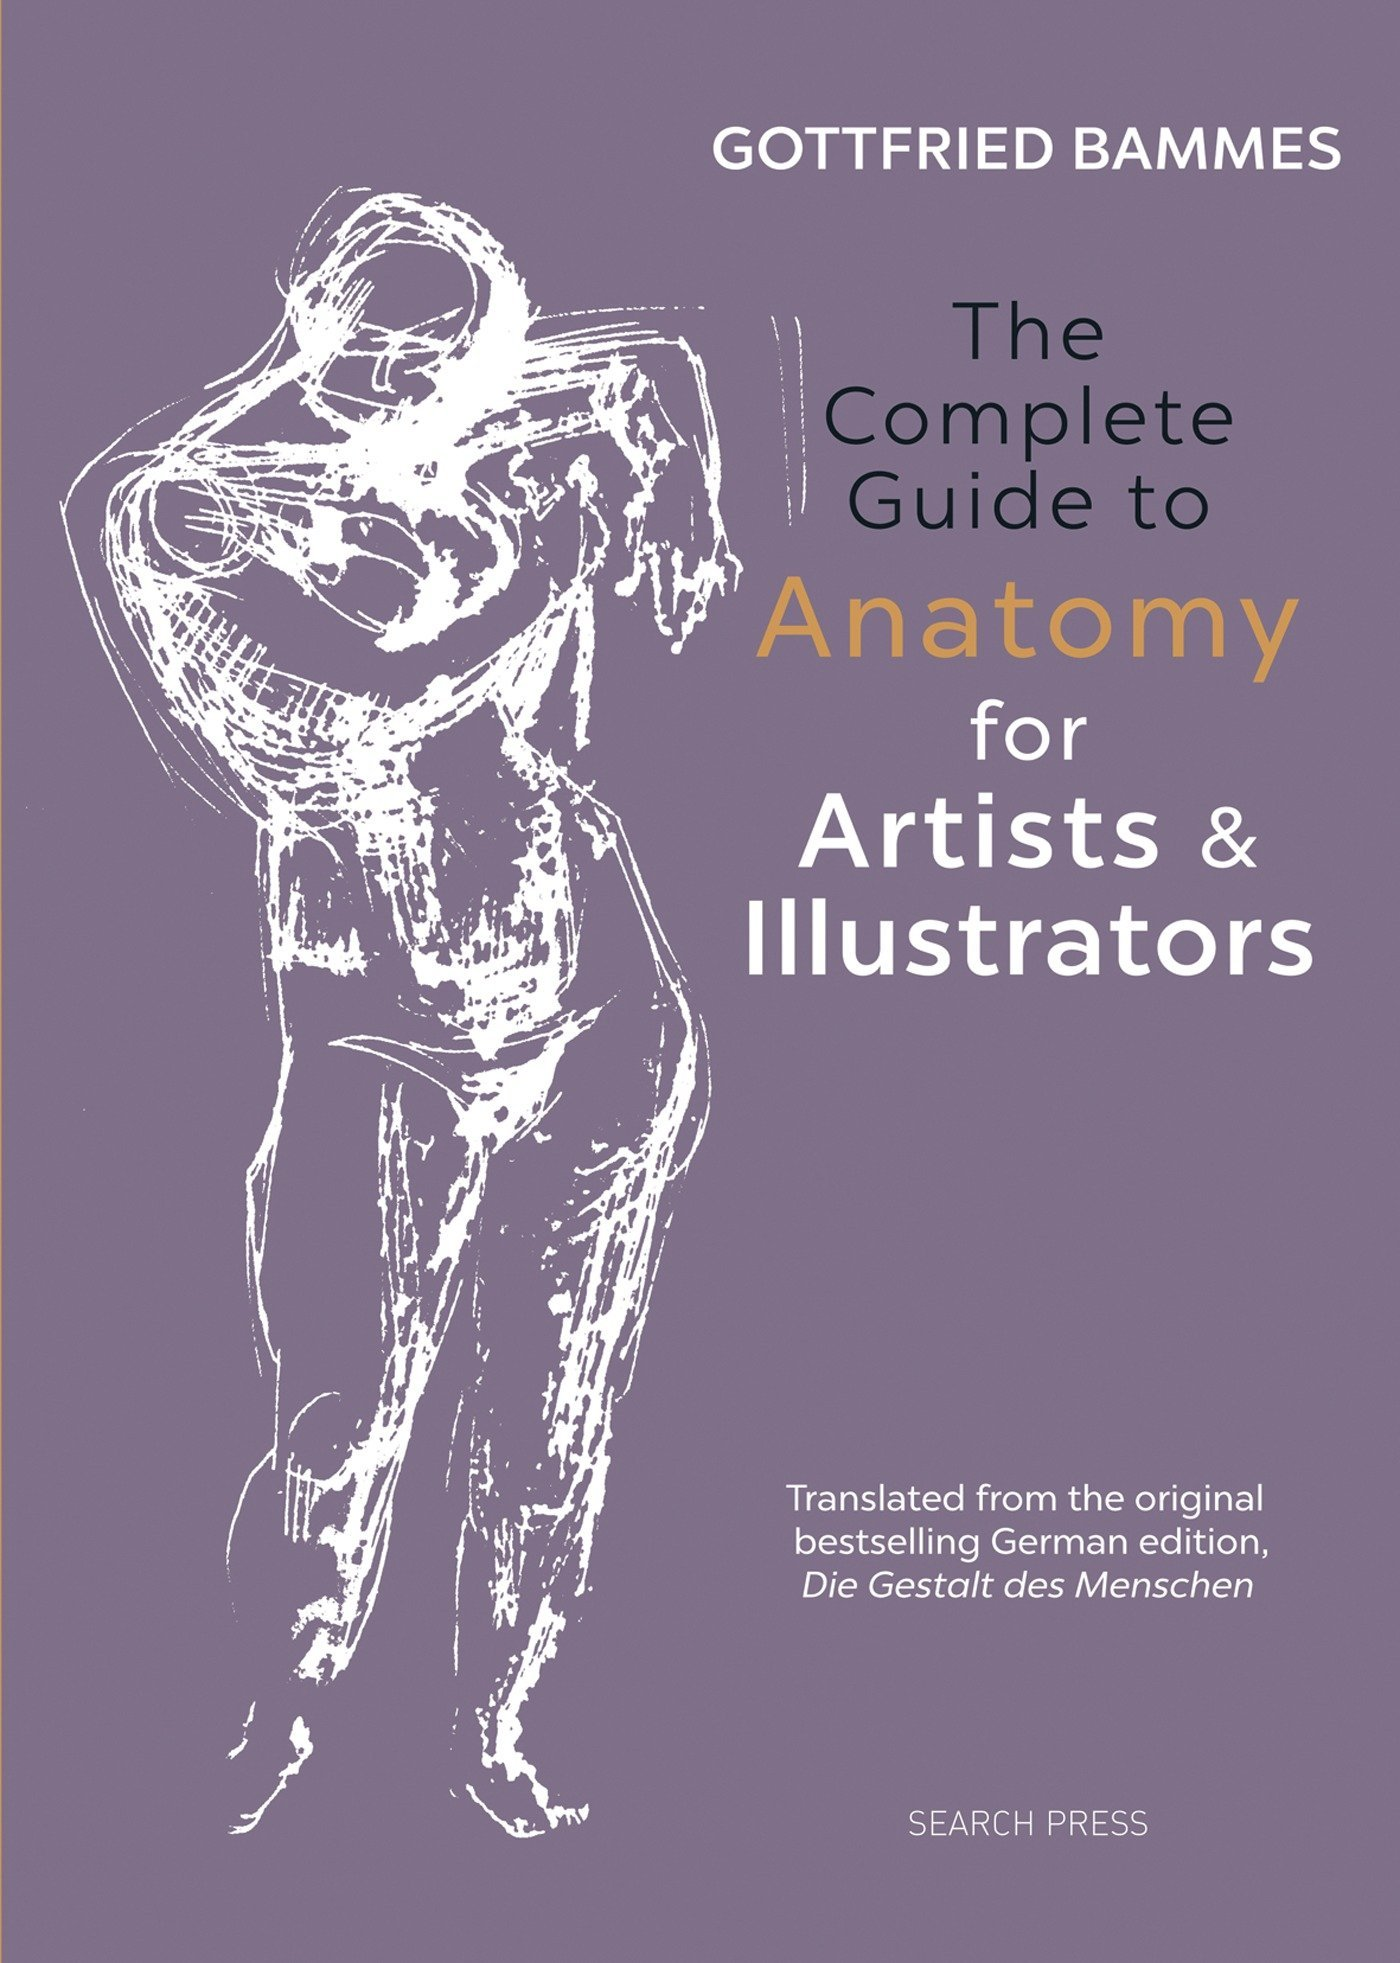 The Complete Guide To Anatomy For Artists Illustrators Gottfried